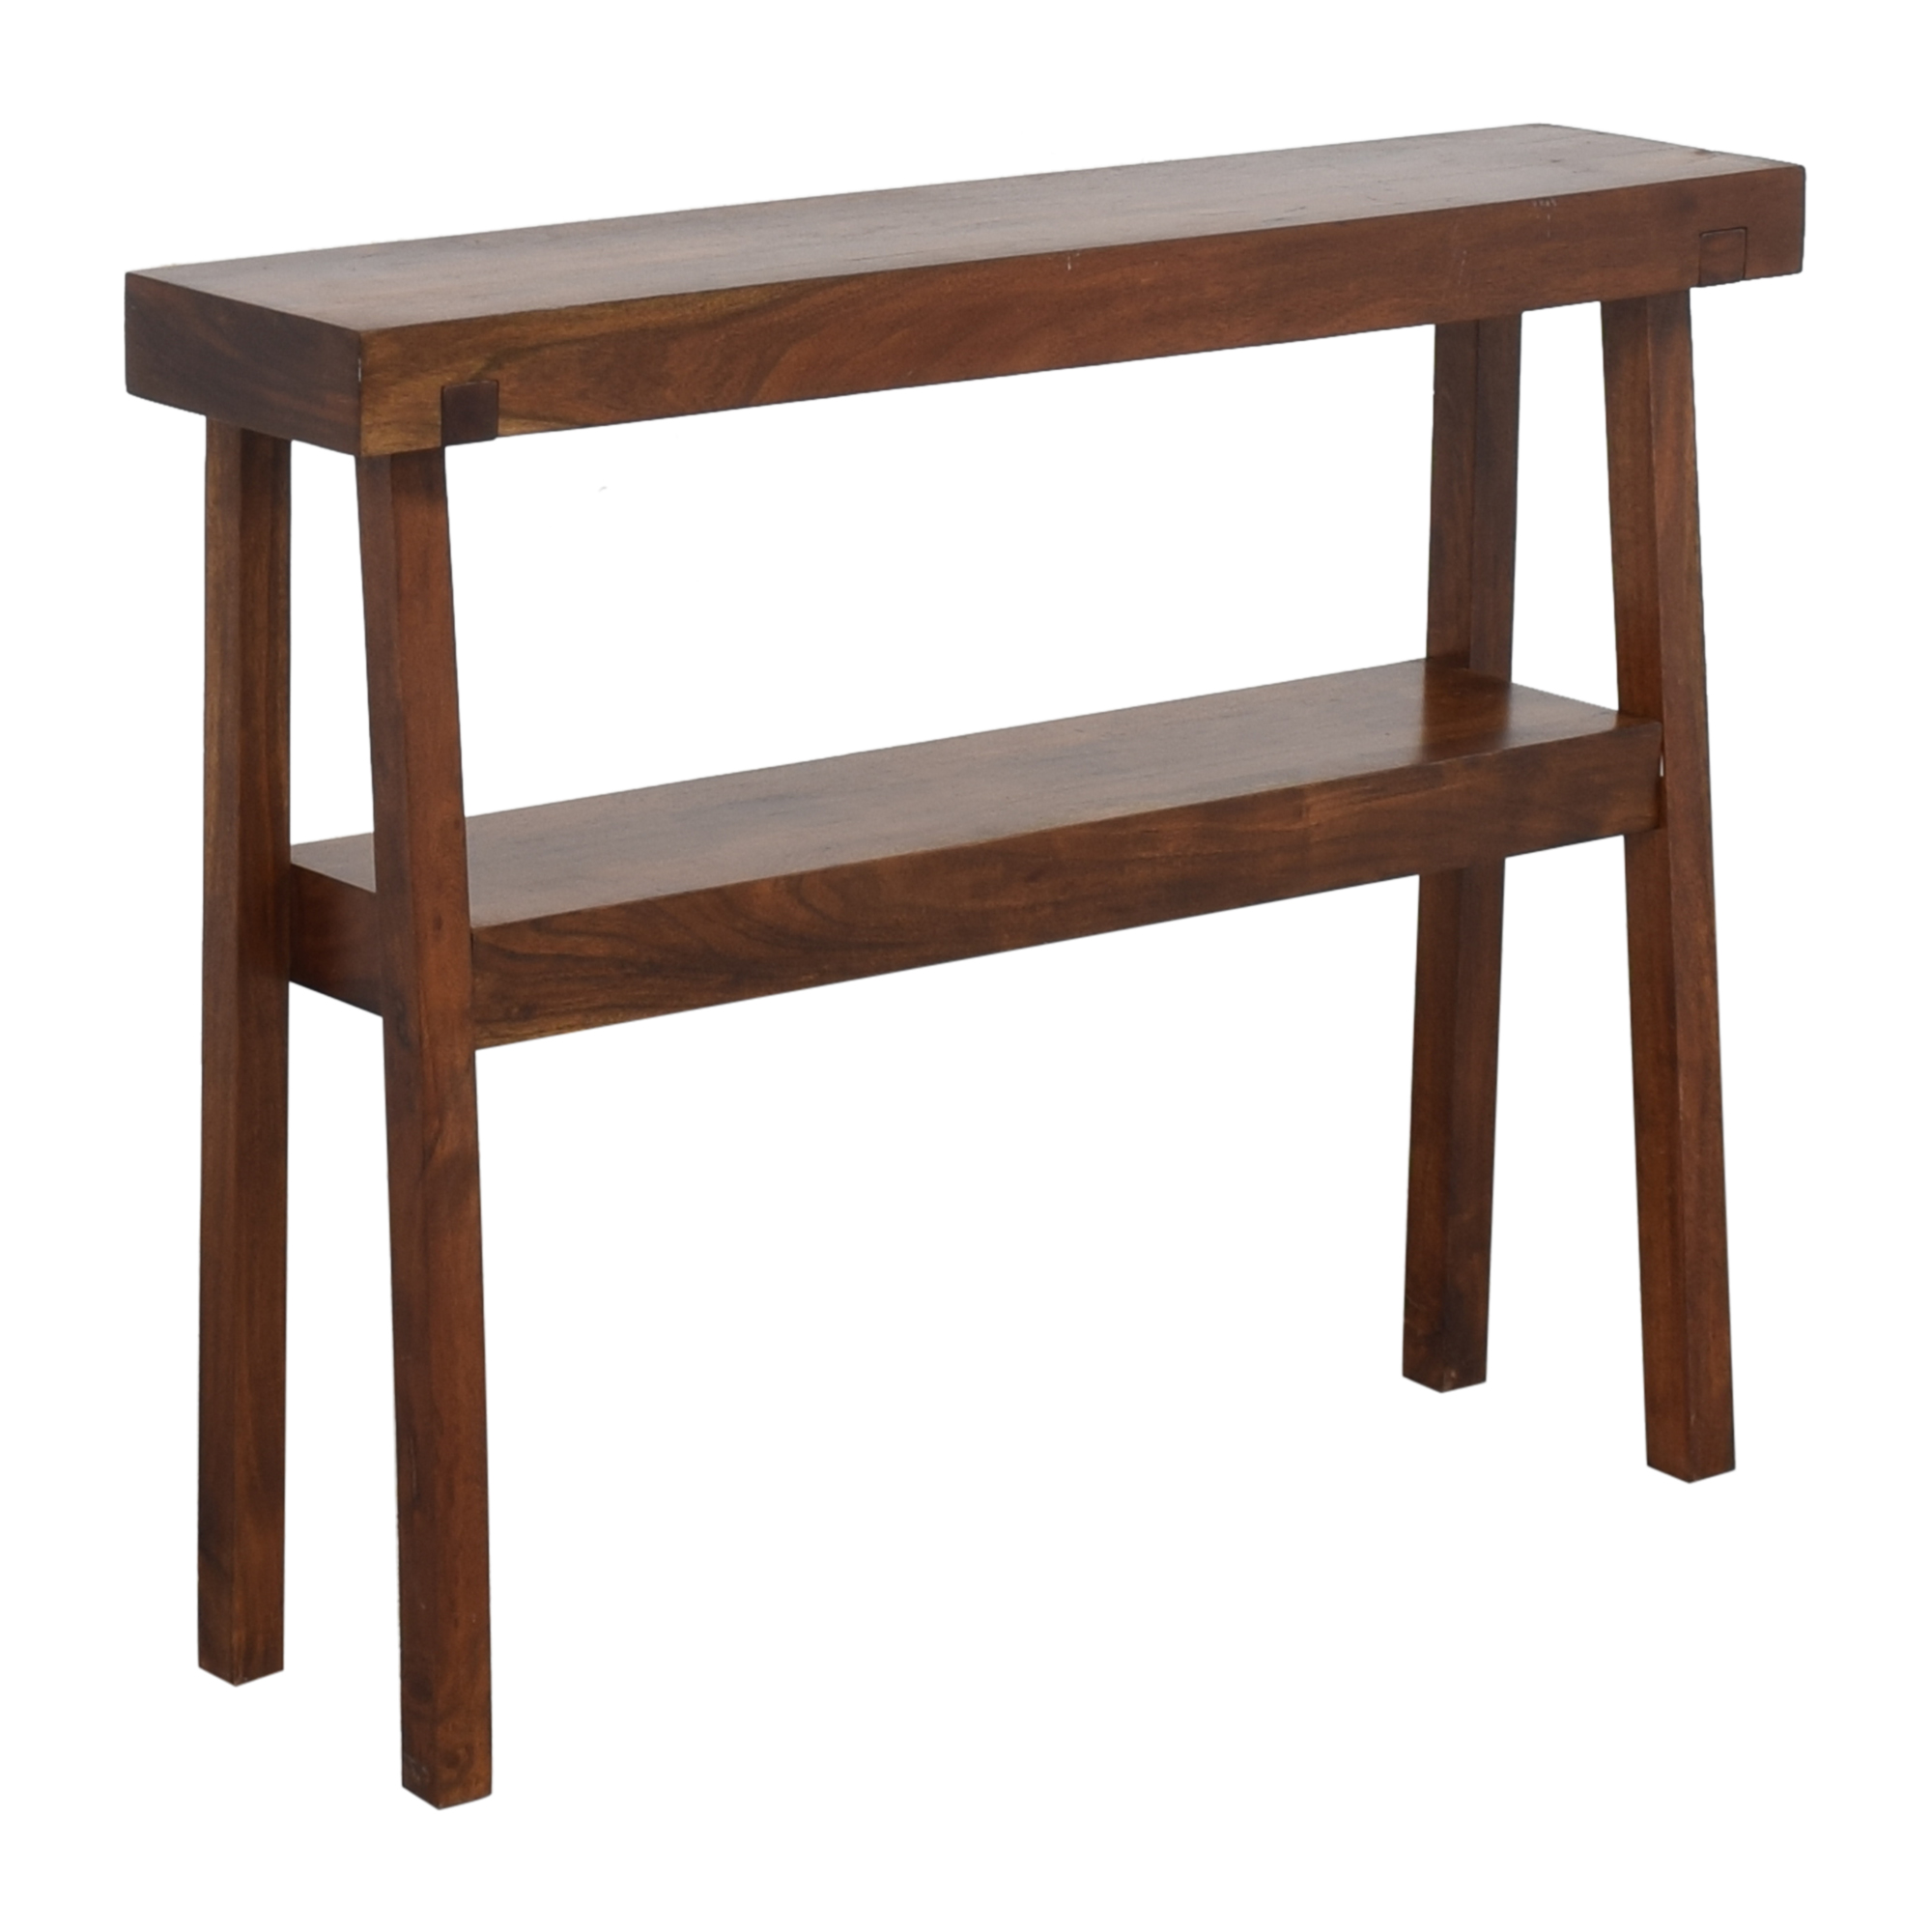 West Elm West Elm Rustic Console Table nyc